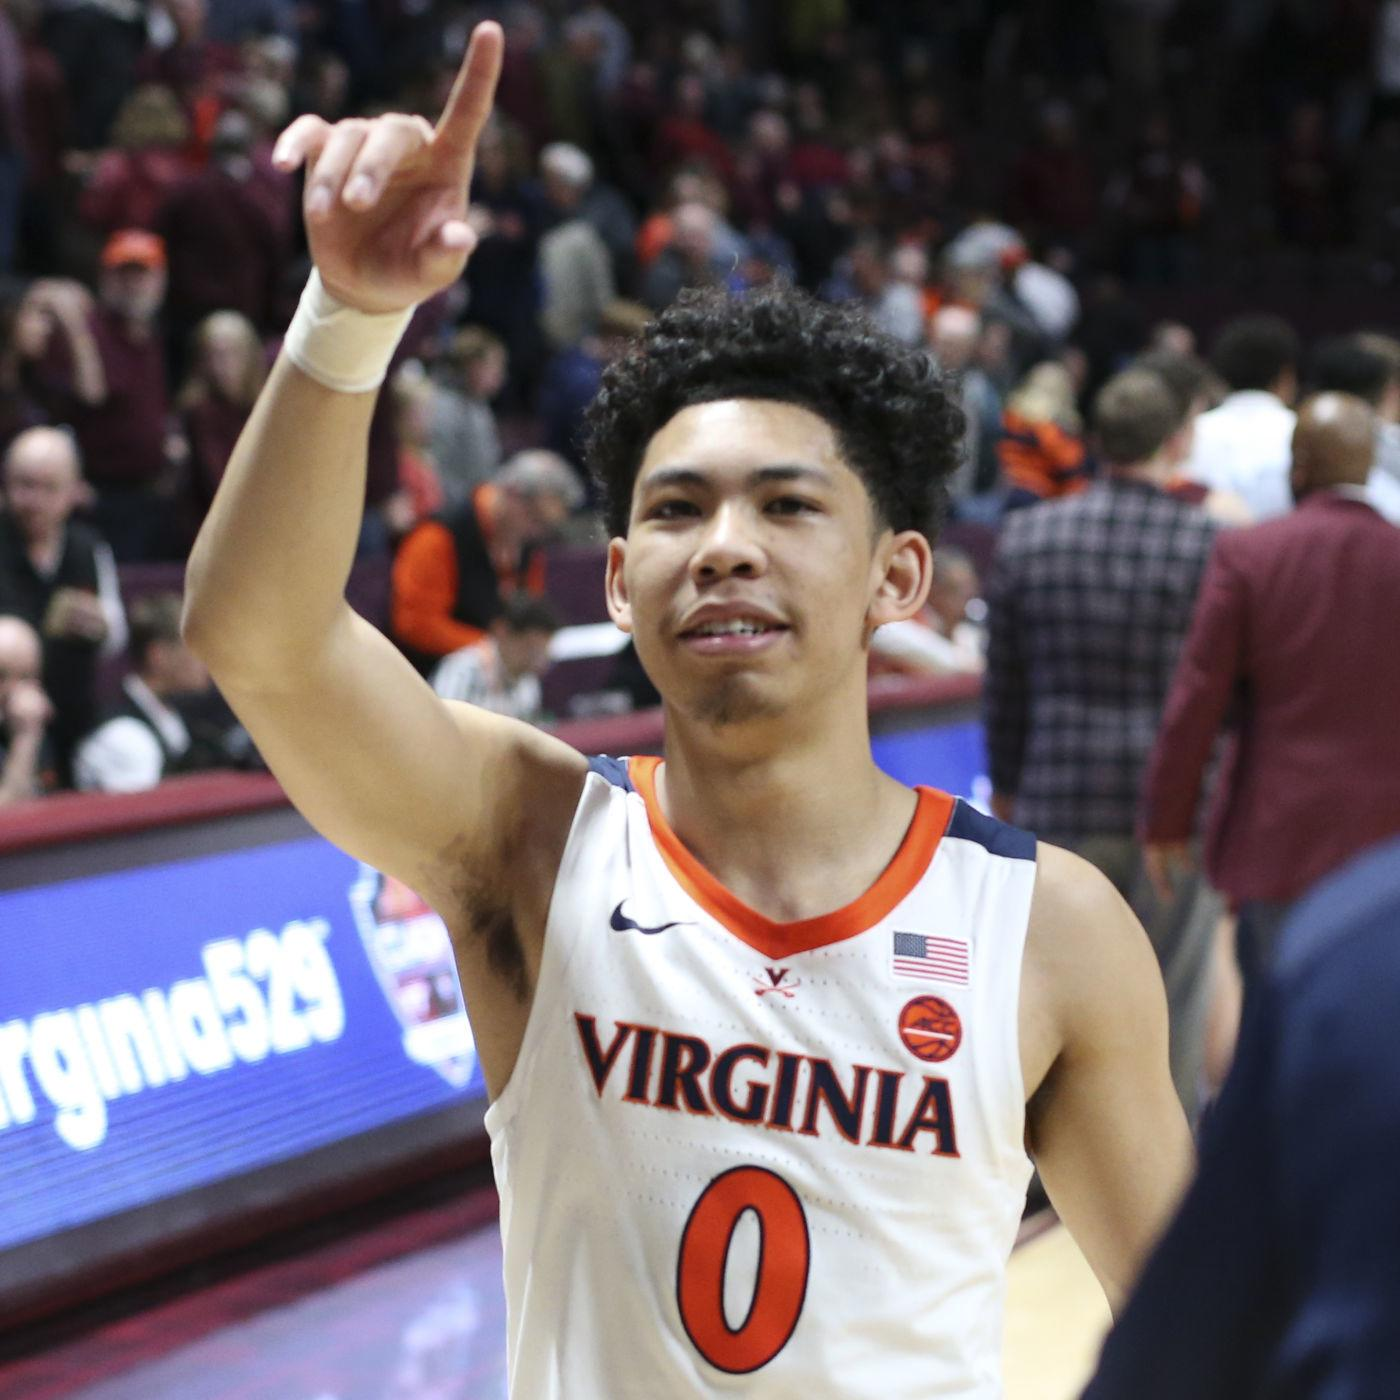 Virginia Men S Basketball Team The Early Favorite To Win The 2021 National Championship Sports Dailyprogress Com